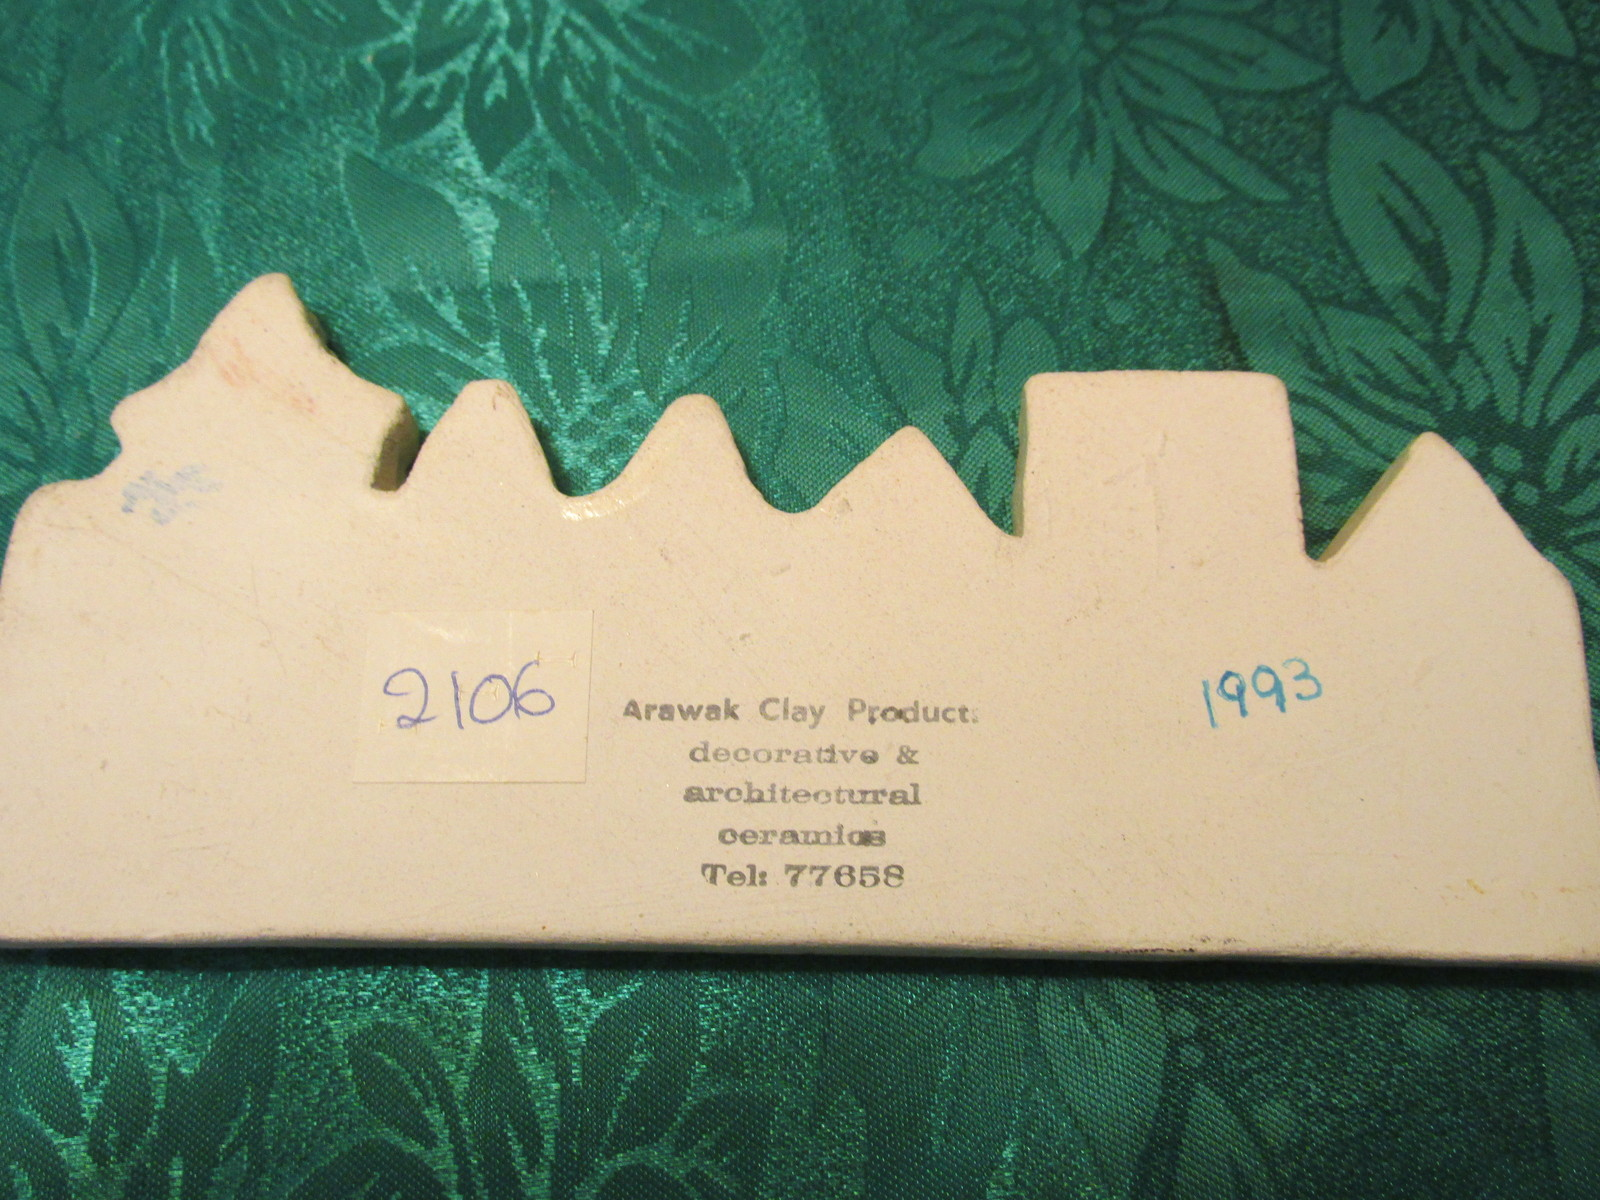 Arawak Clay Products 1993 Decorative Plaque